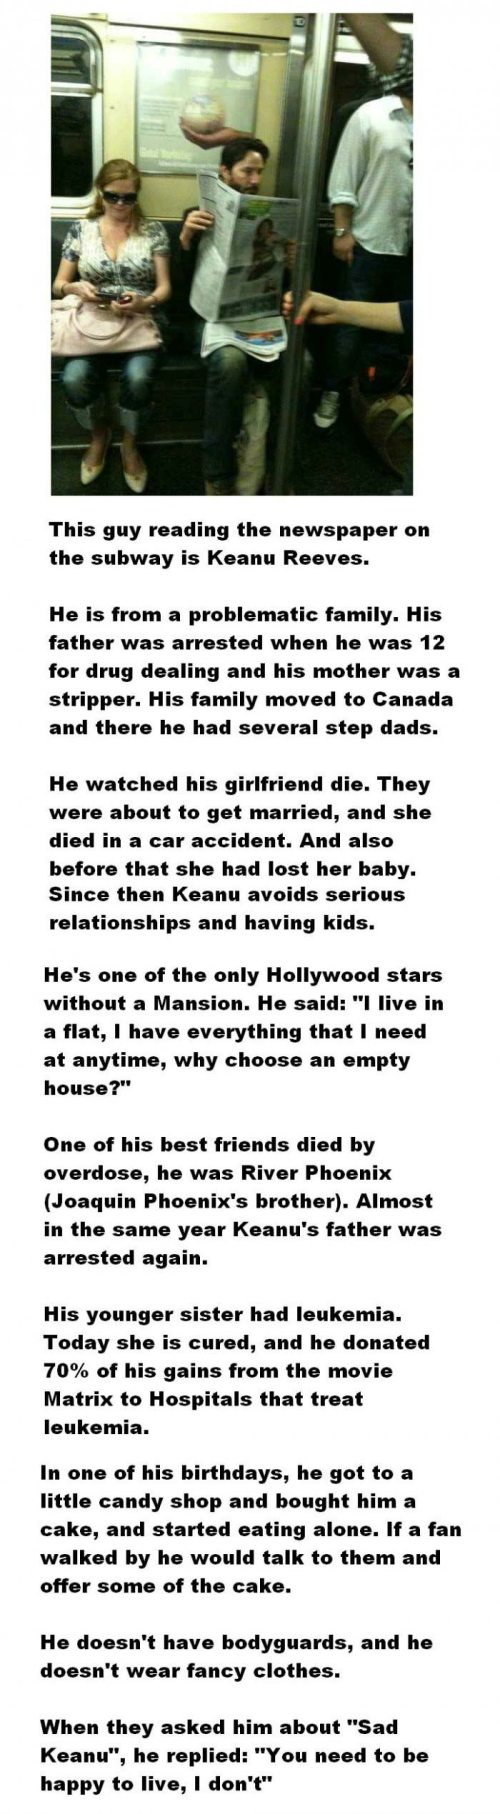 Keanu Reeves. Is this true? Been a fan as long as I can remember...